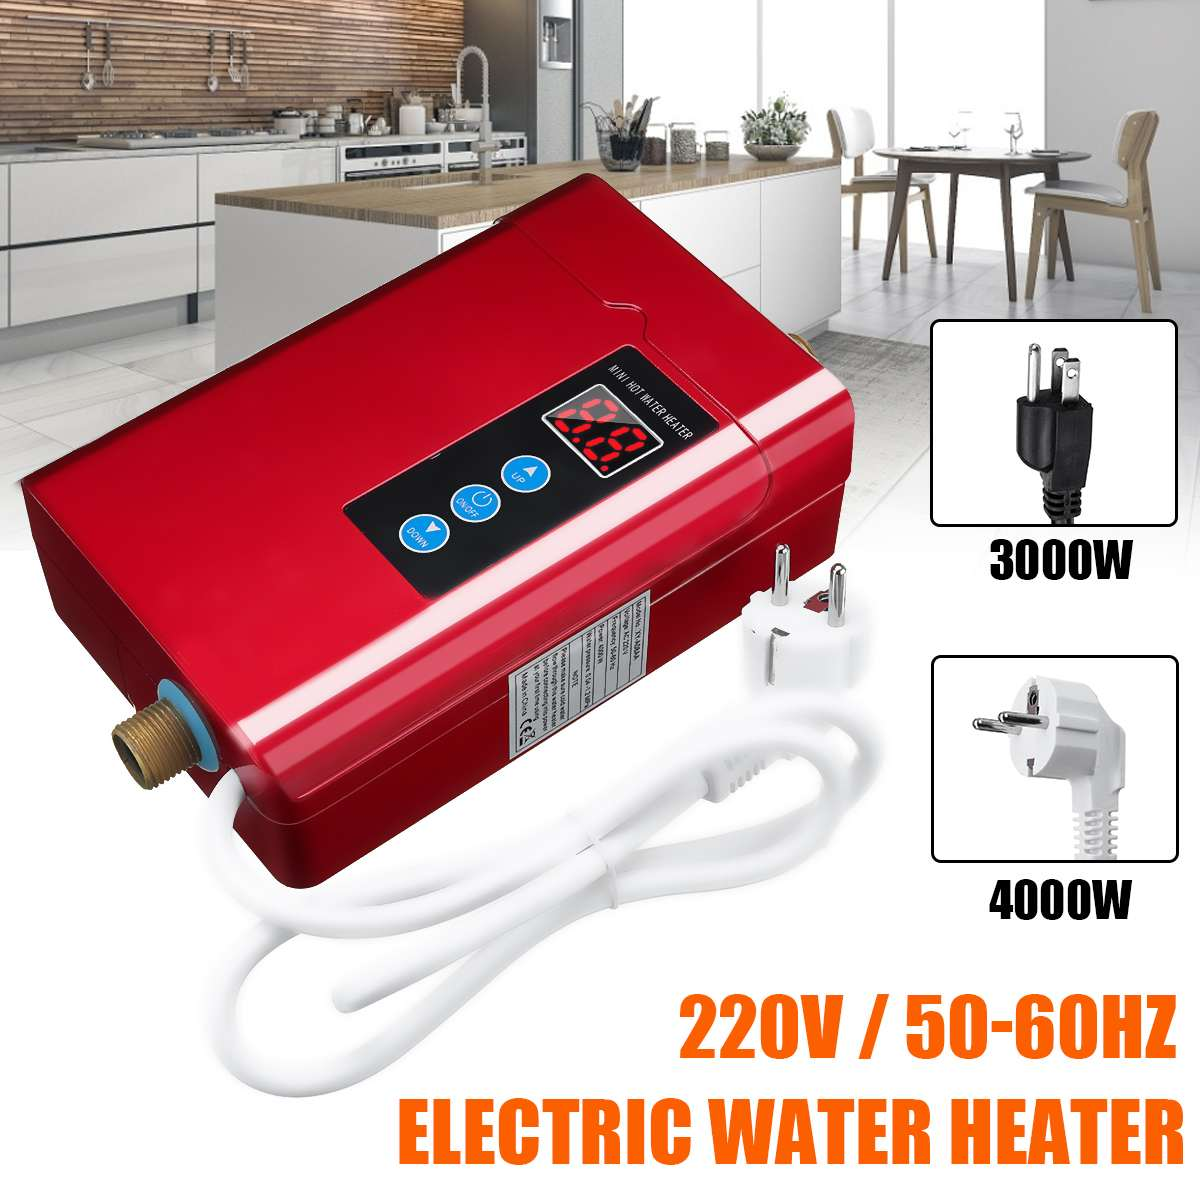 4000W Electric Water Heater Instant Tankless Gear 220V 4KW Temperature Display Fast Heating Bathroom Shower Kichen